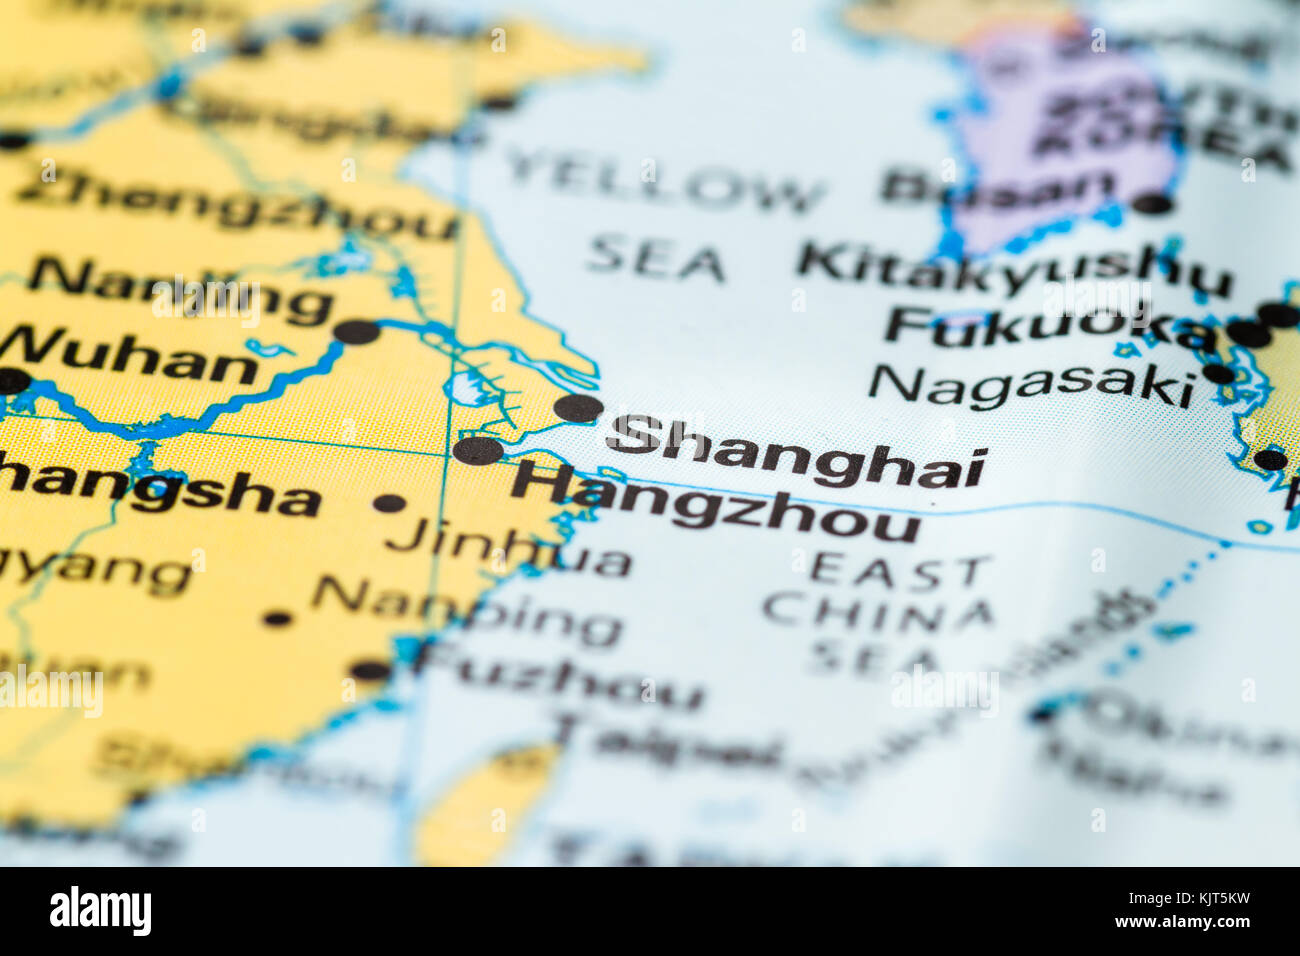 Close up of Shanghai on a world map Stock Photo: 166488445 - Alamy